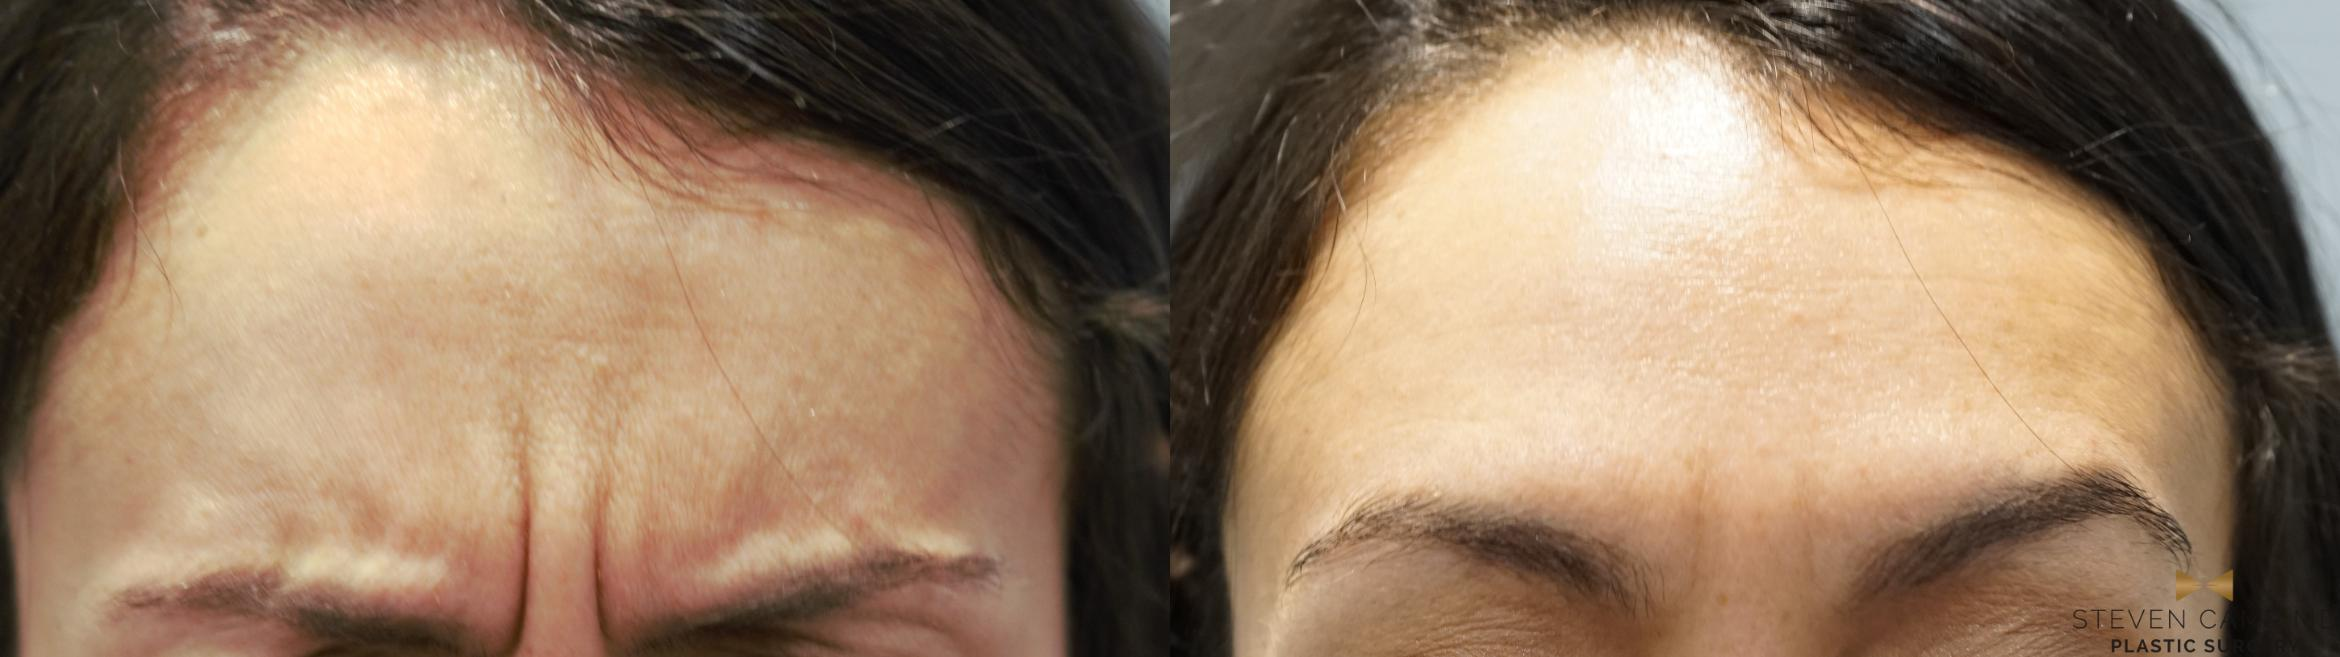 BOTOX Before & After Photo | Fort Worth, Texas | Steven Camp MD Plastic Surgery